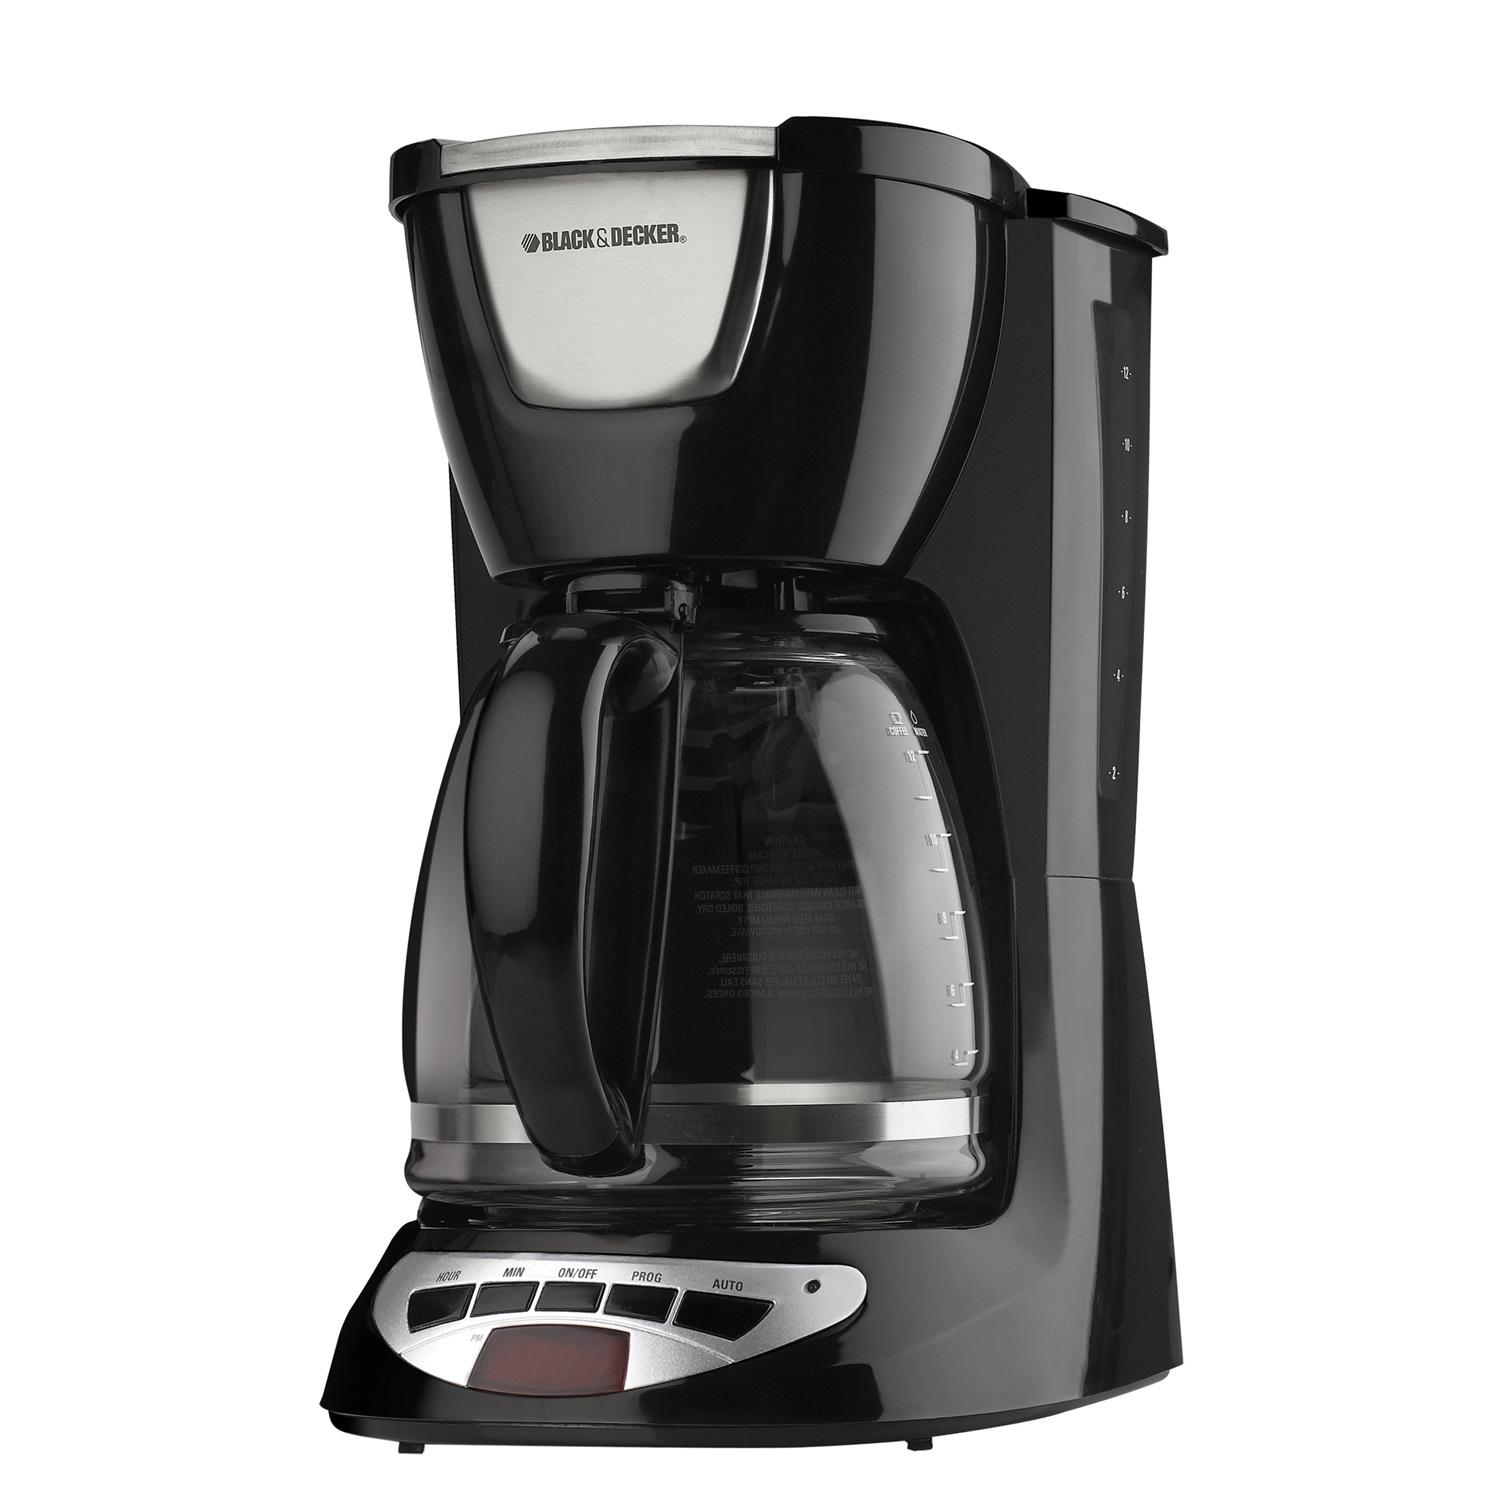 Black & Decker 12 Cup Black Programmable Coffee Maker (DCM100BC) 983-DCM100BC